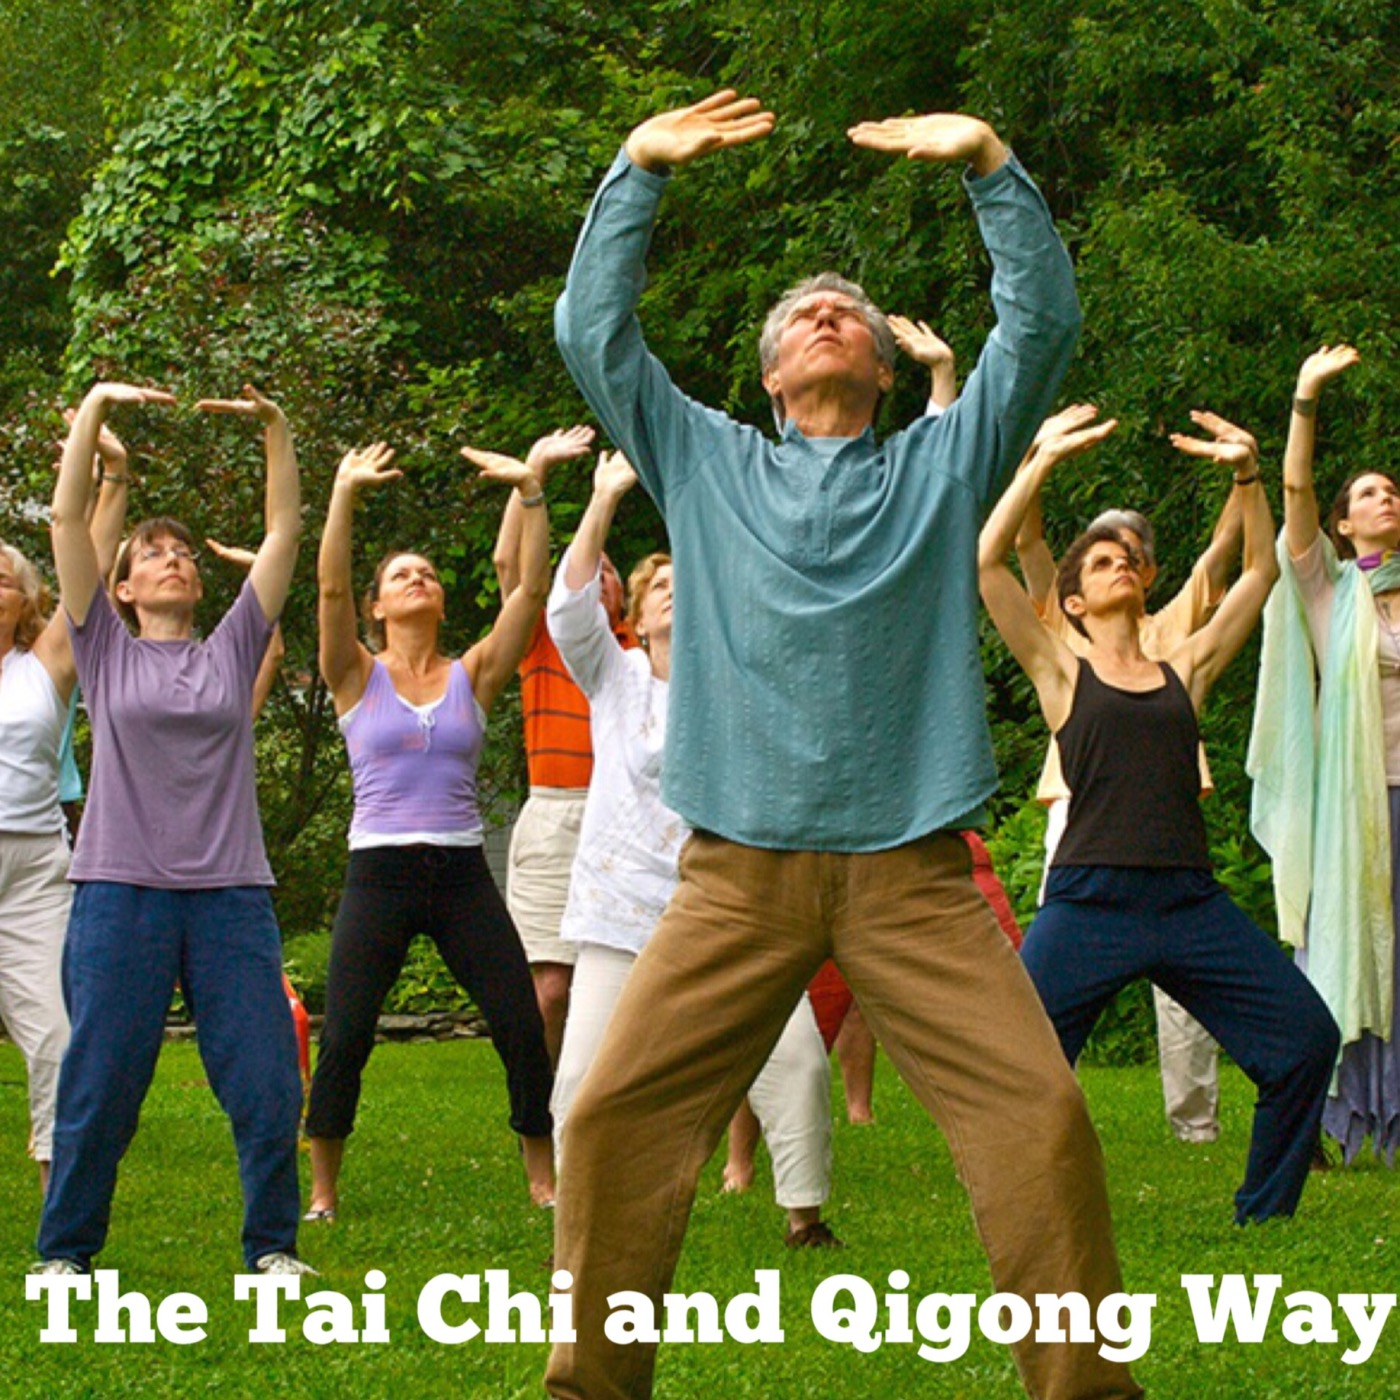 The Tai Chi and Qigong Way Podcast